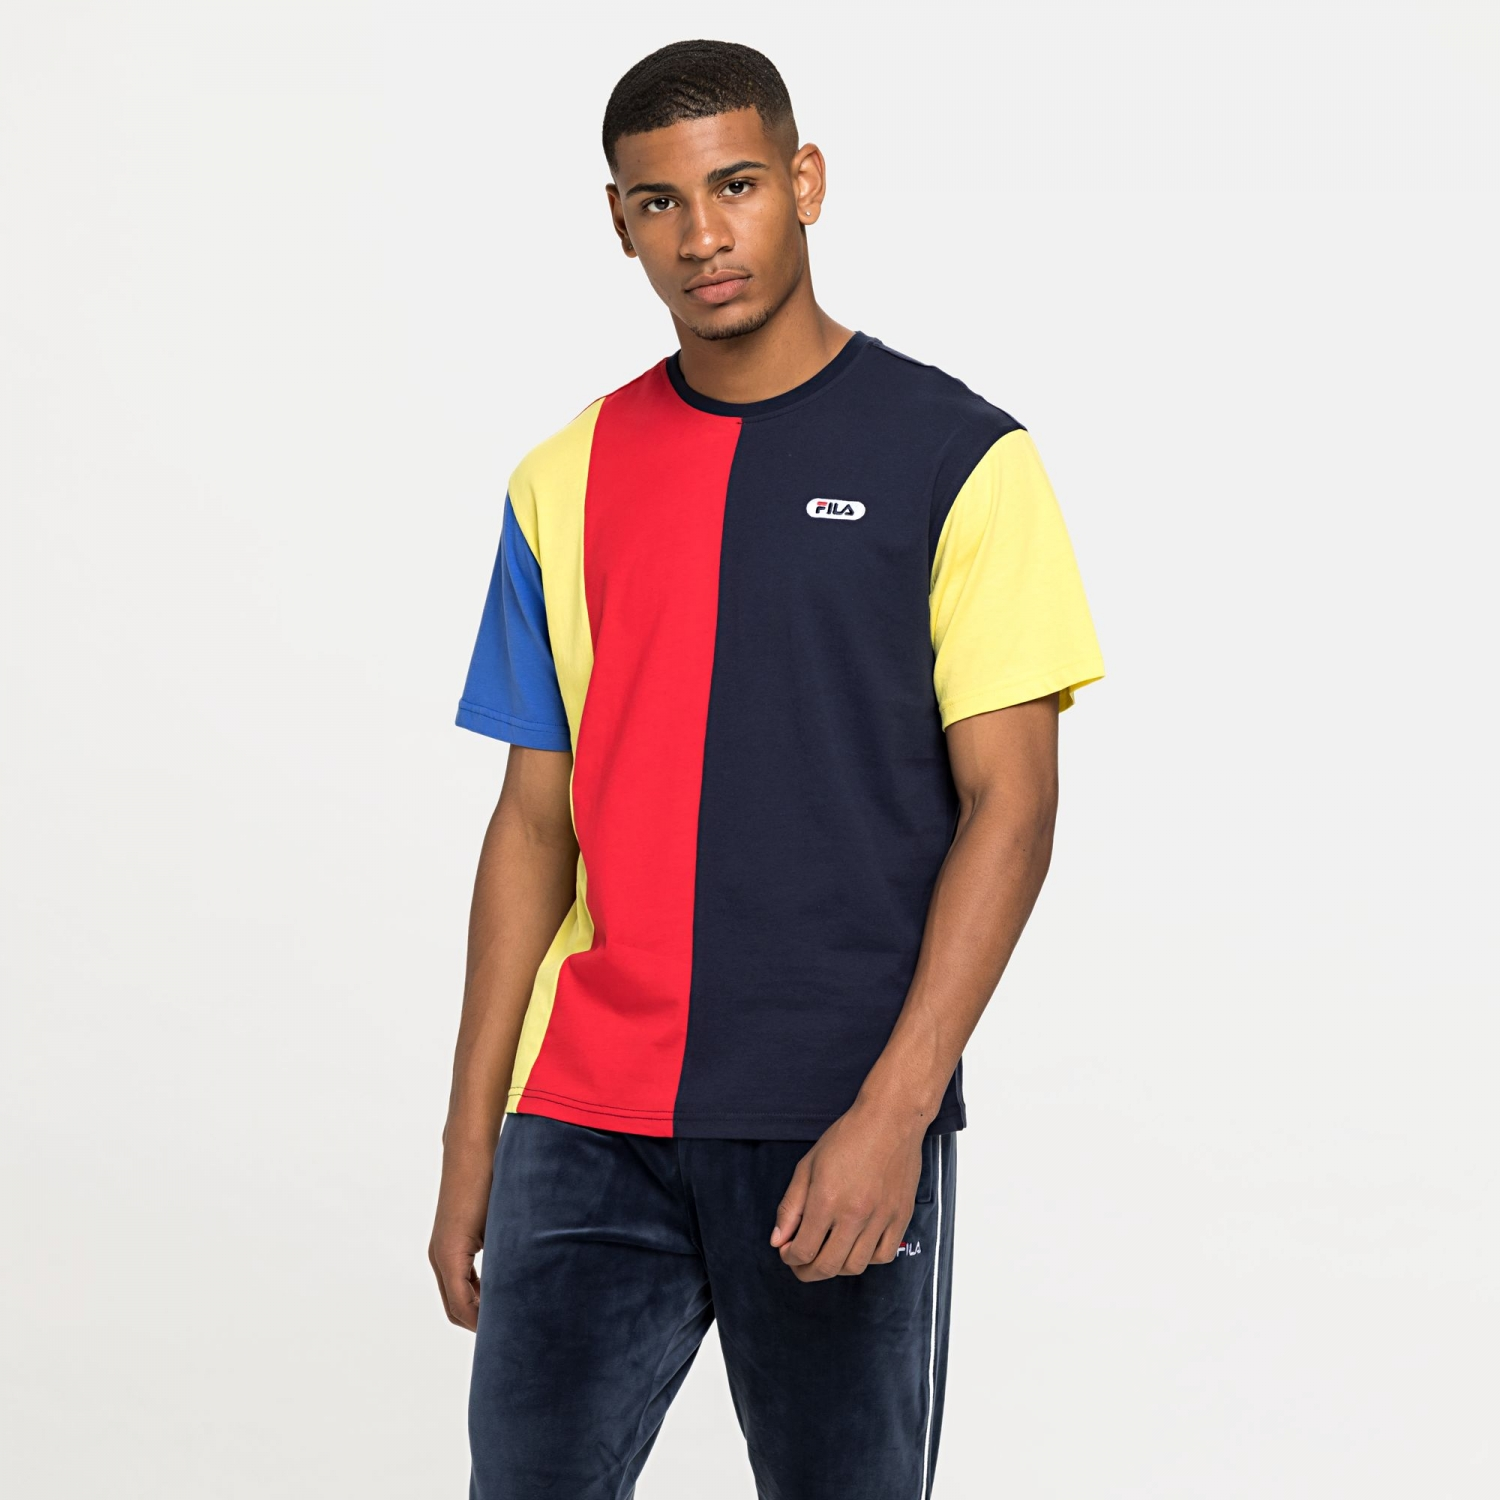 Fila Bansi Blocked Tee blue-red-yellow Bild 1